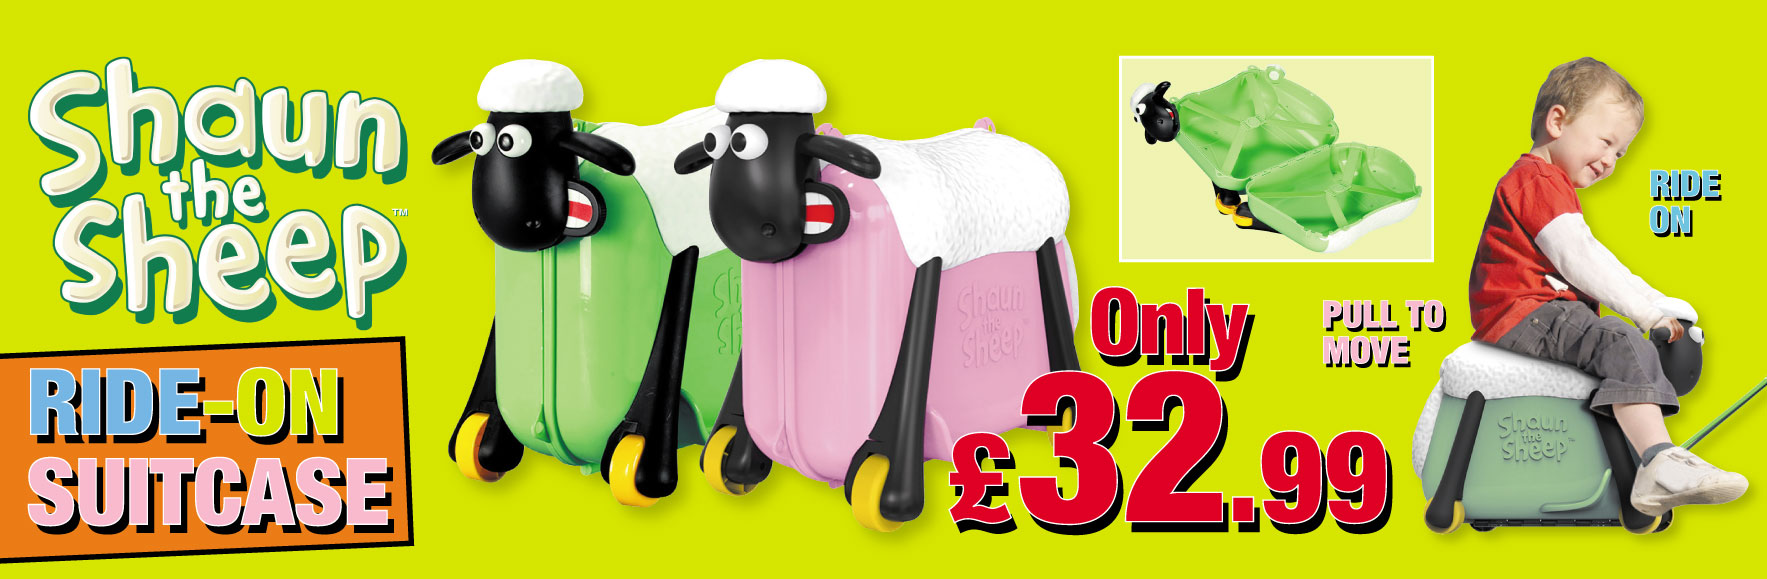 Shaun the sheep ride-on suitcase ONLY £32.99